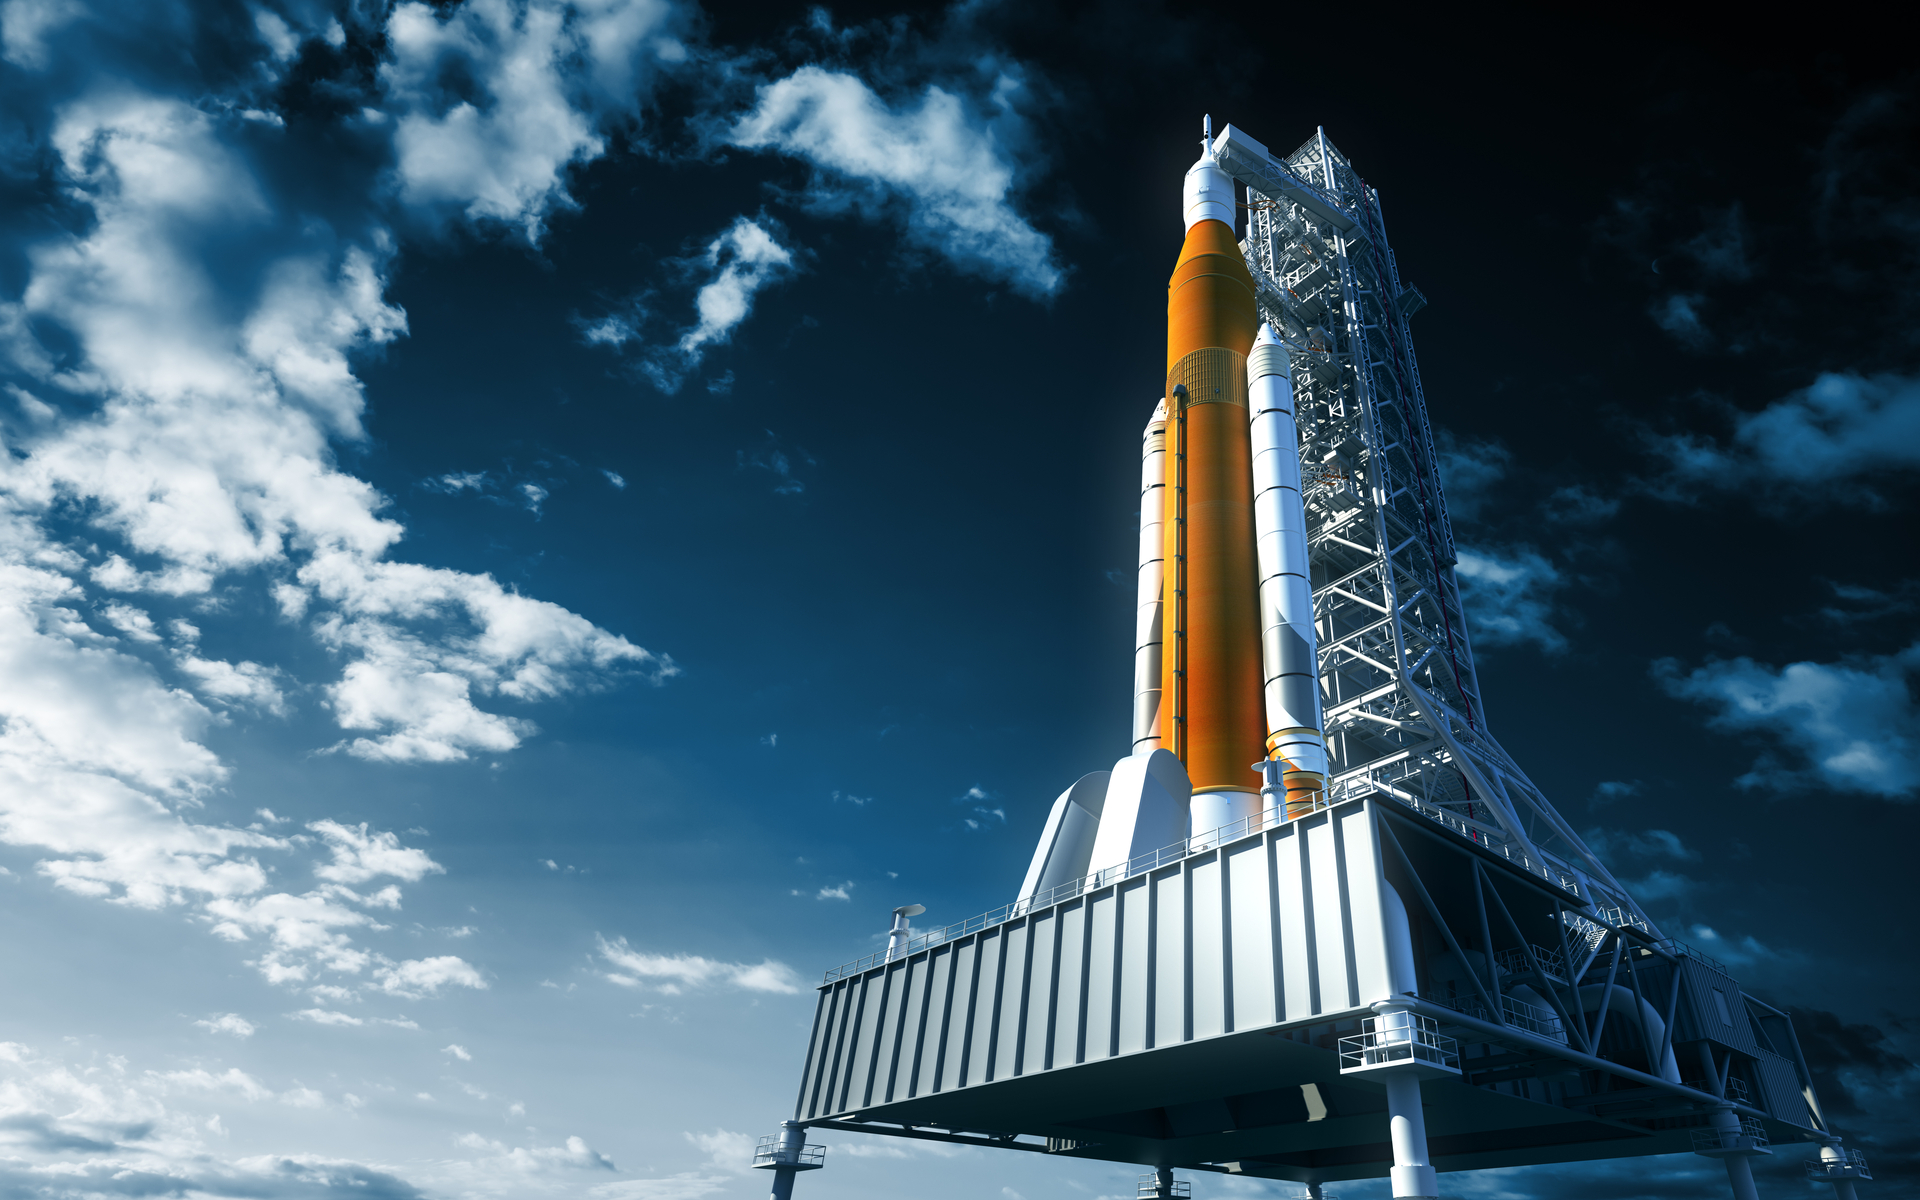 space shuttle launchpad moon bitcoin